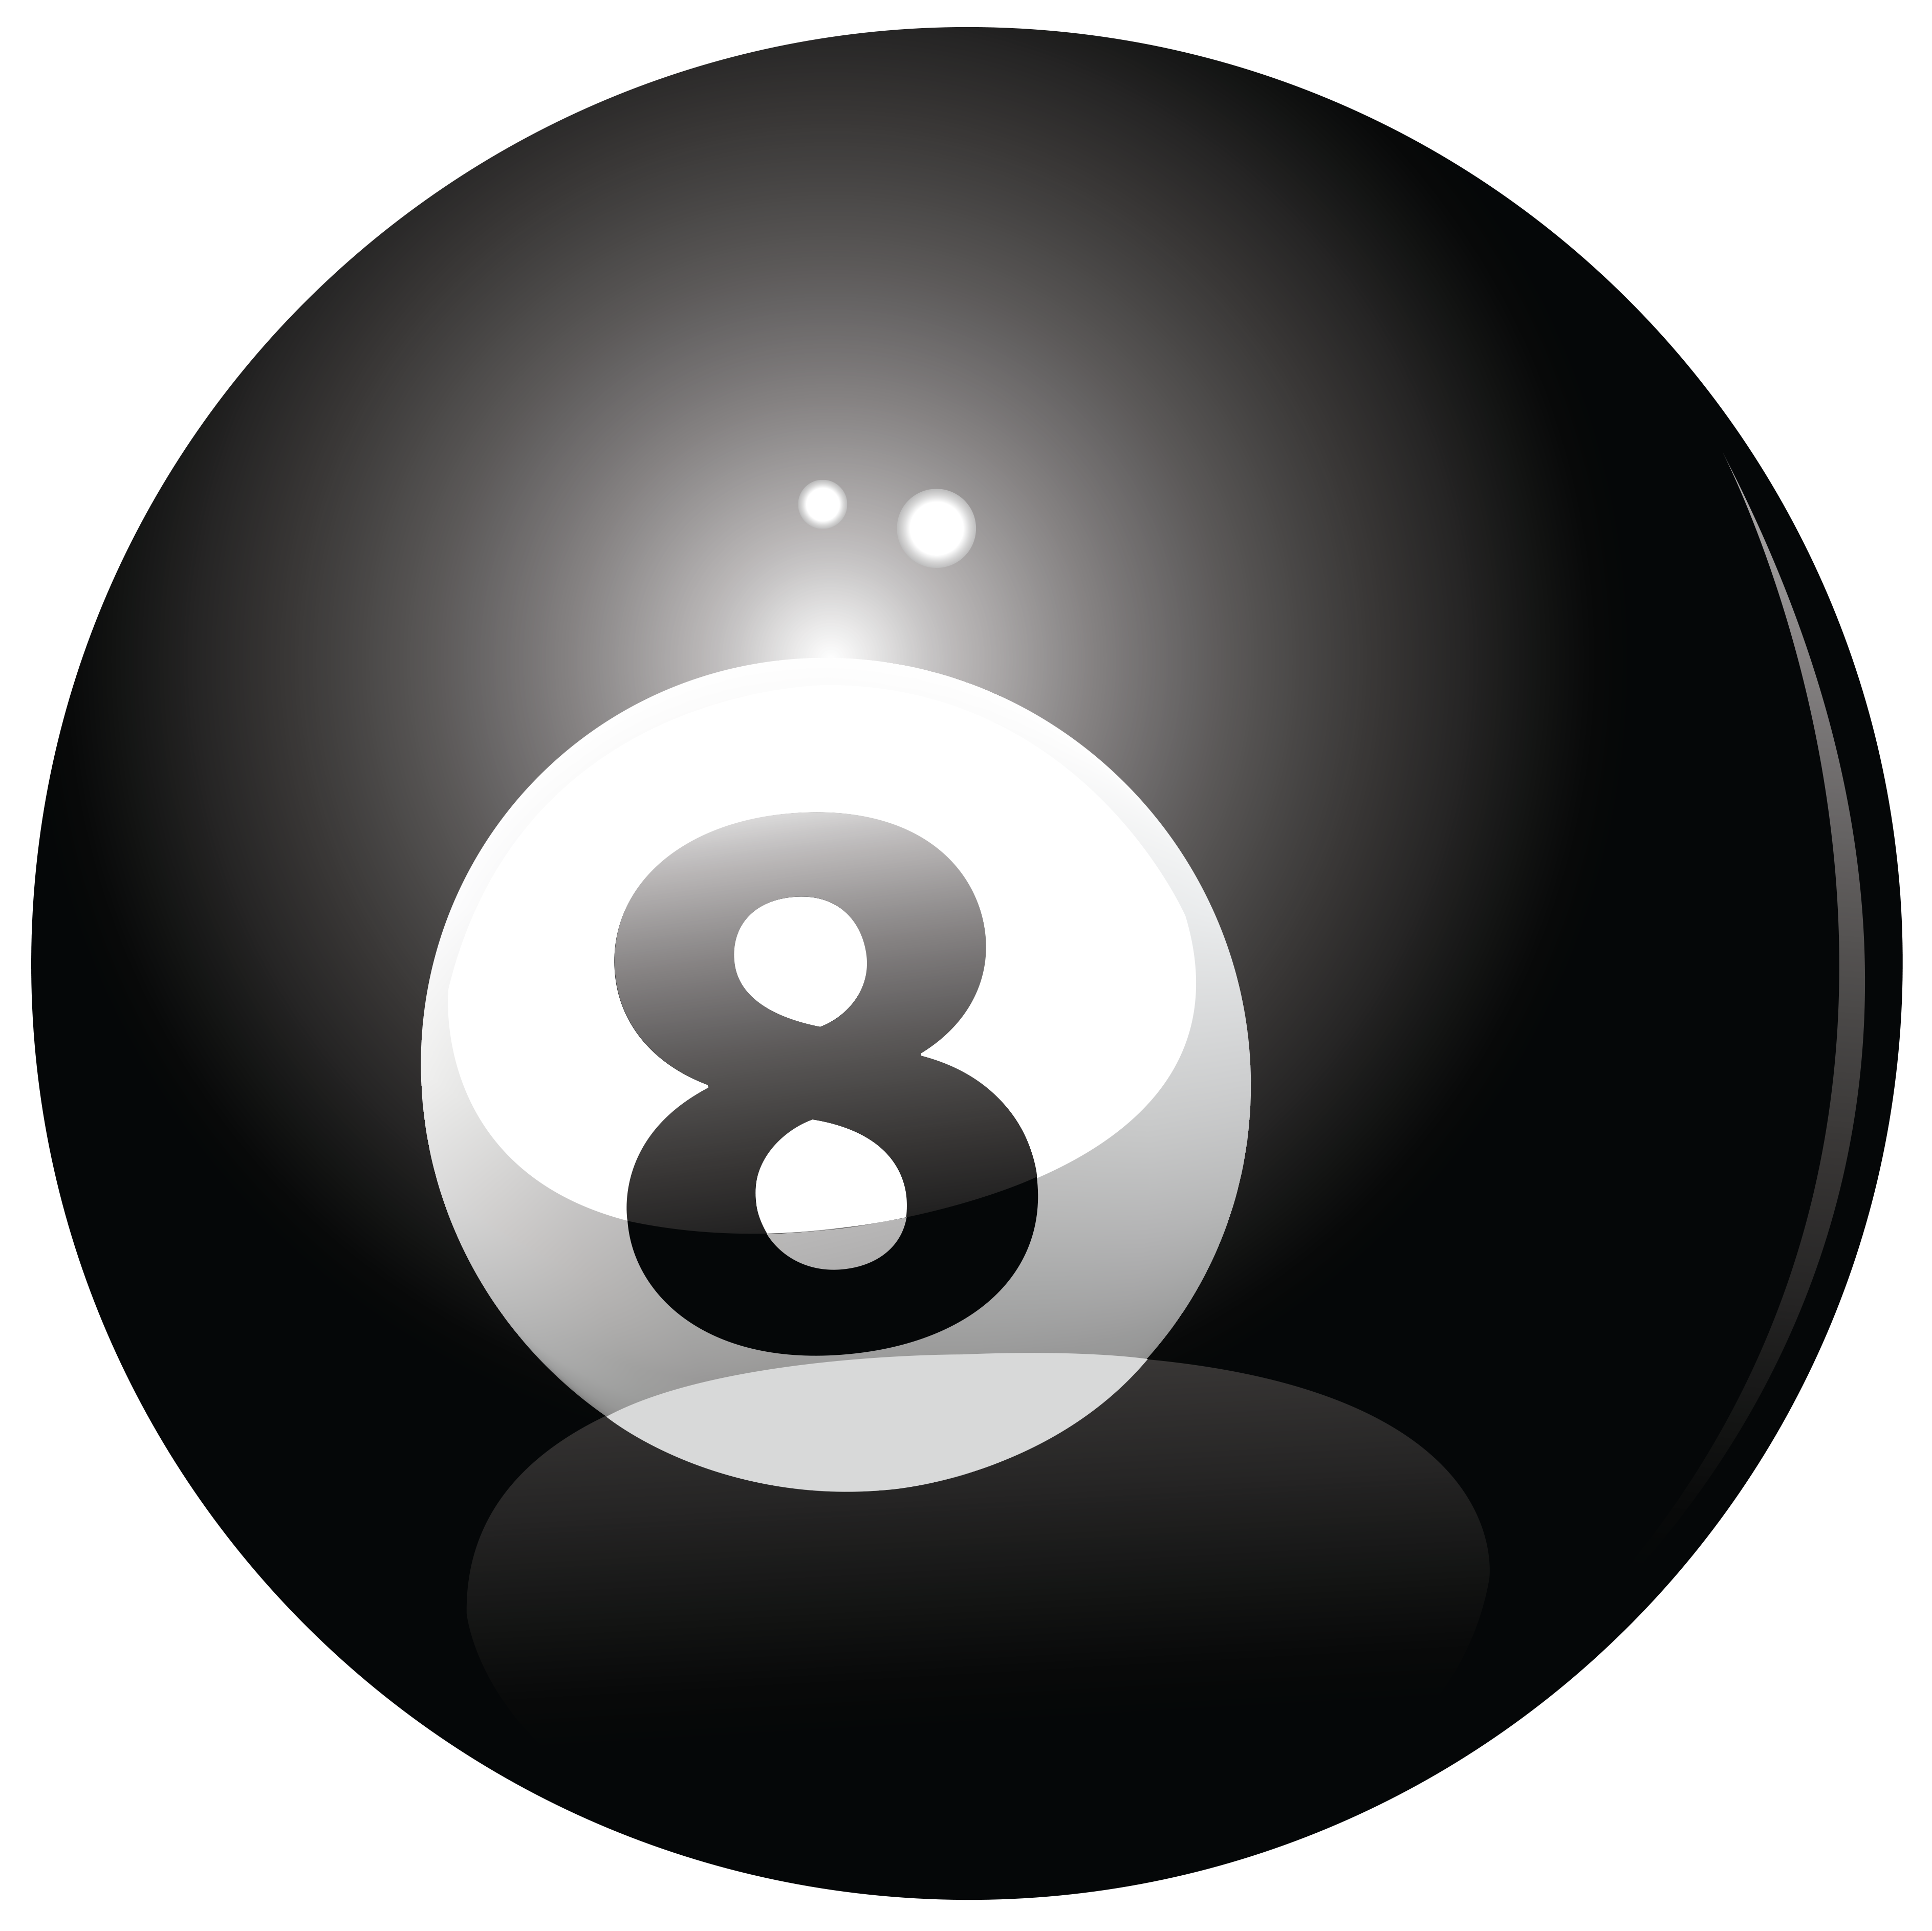 Pool ball png. Hd transparent images pluspng